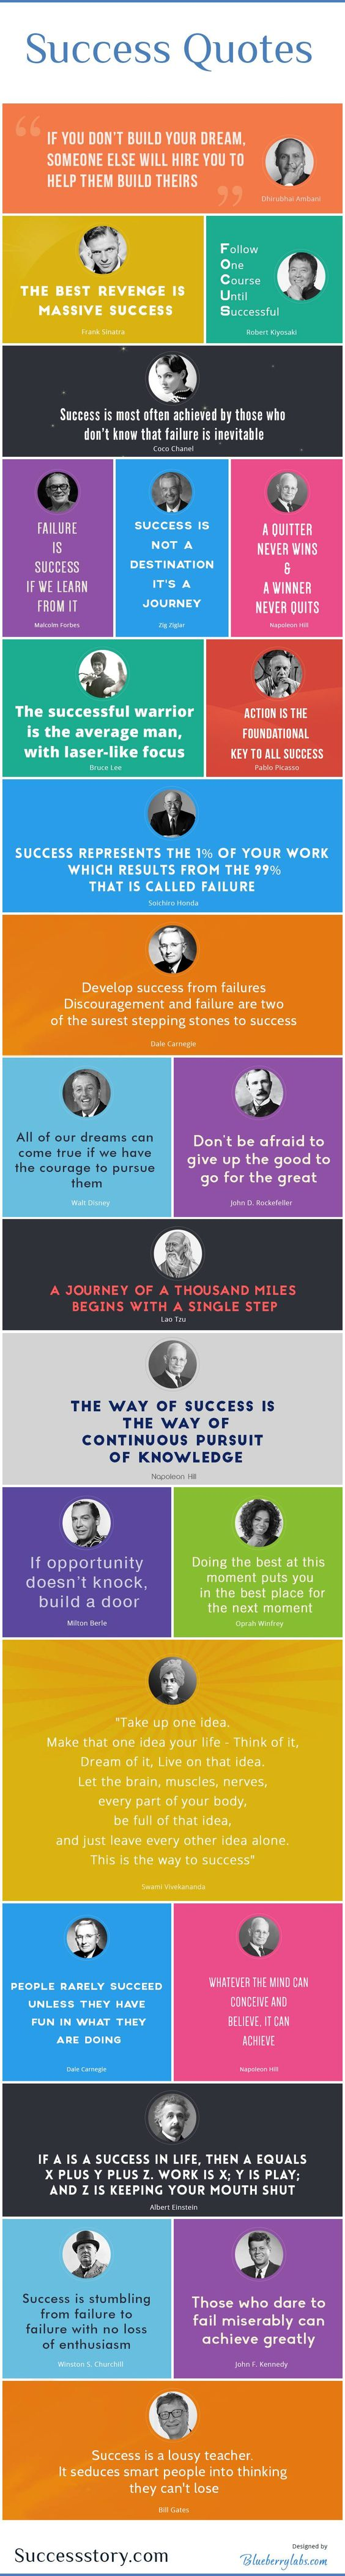 Motivational-Quotes-about-achieving-Success-Turn-Your-Goals-and-Dreams-Into-Success - inspirational - motivation - dream - goal - uplifting